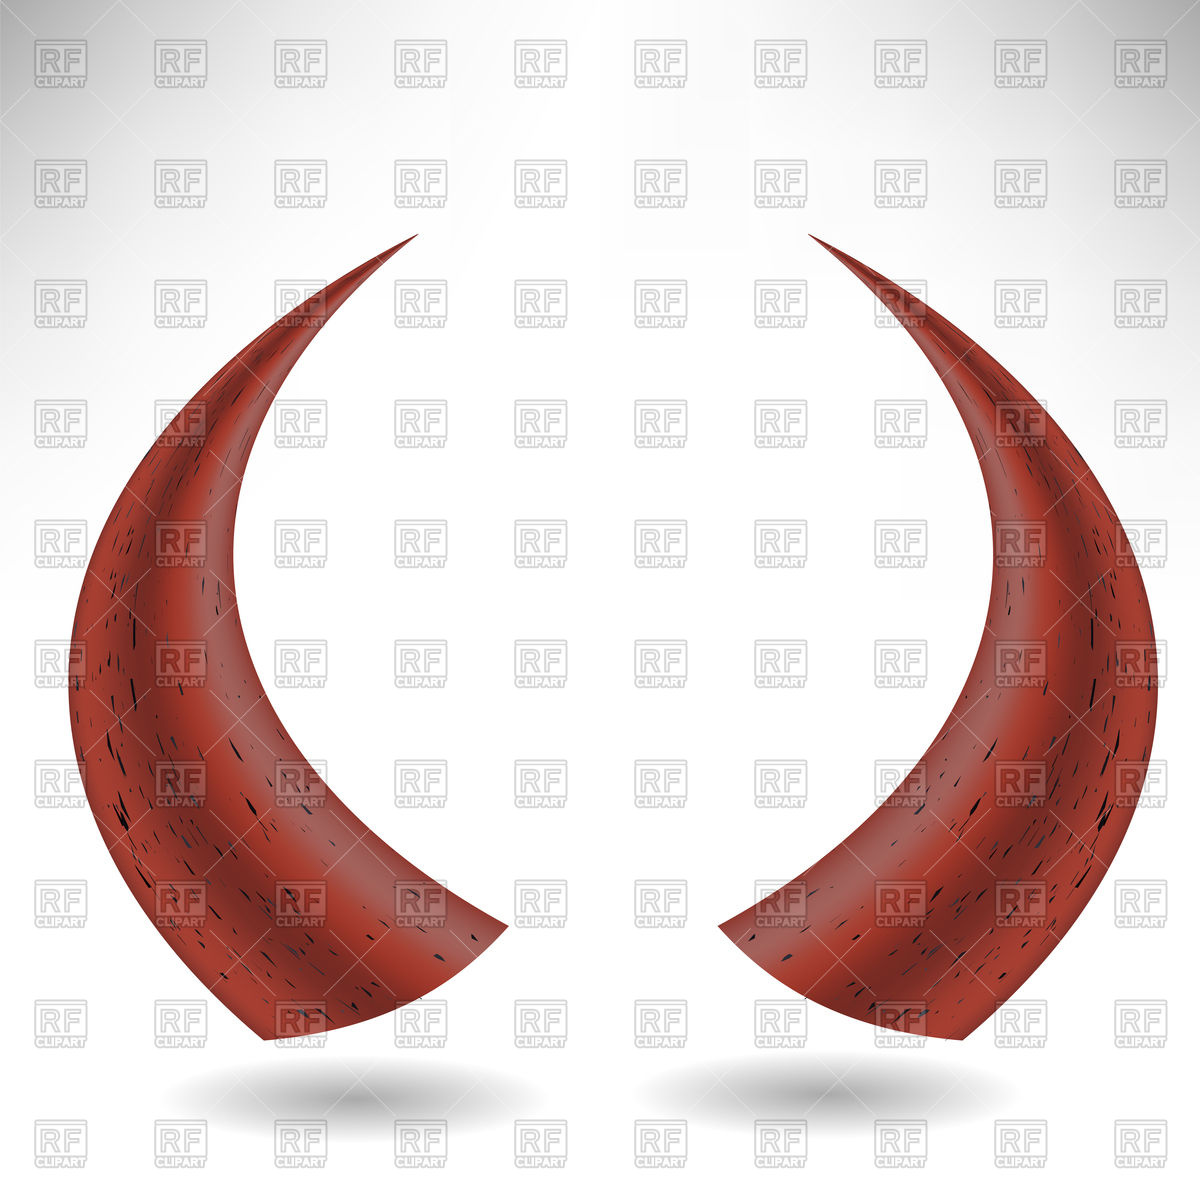 Halloween red horns, devil's horns Vector Image #117171.